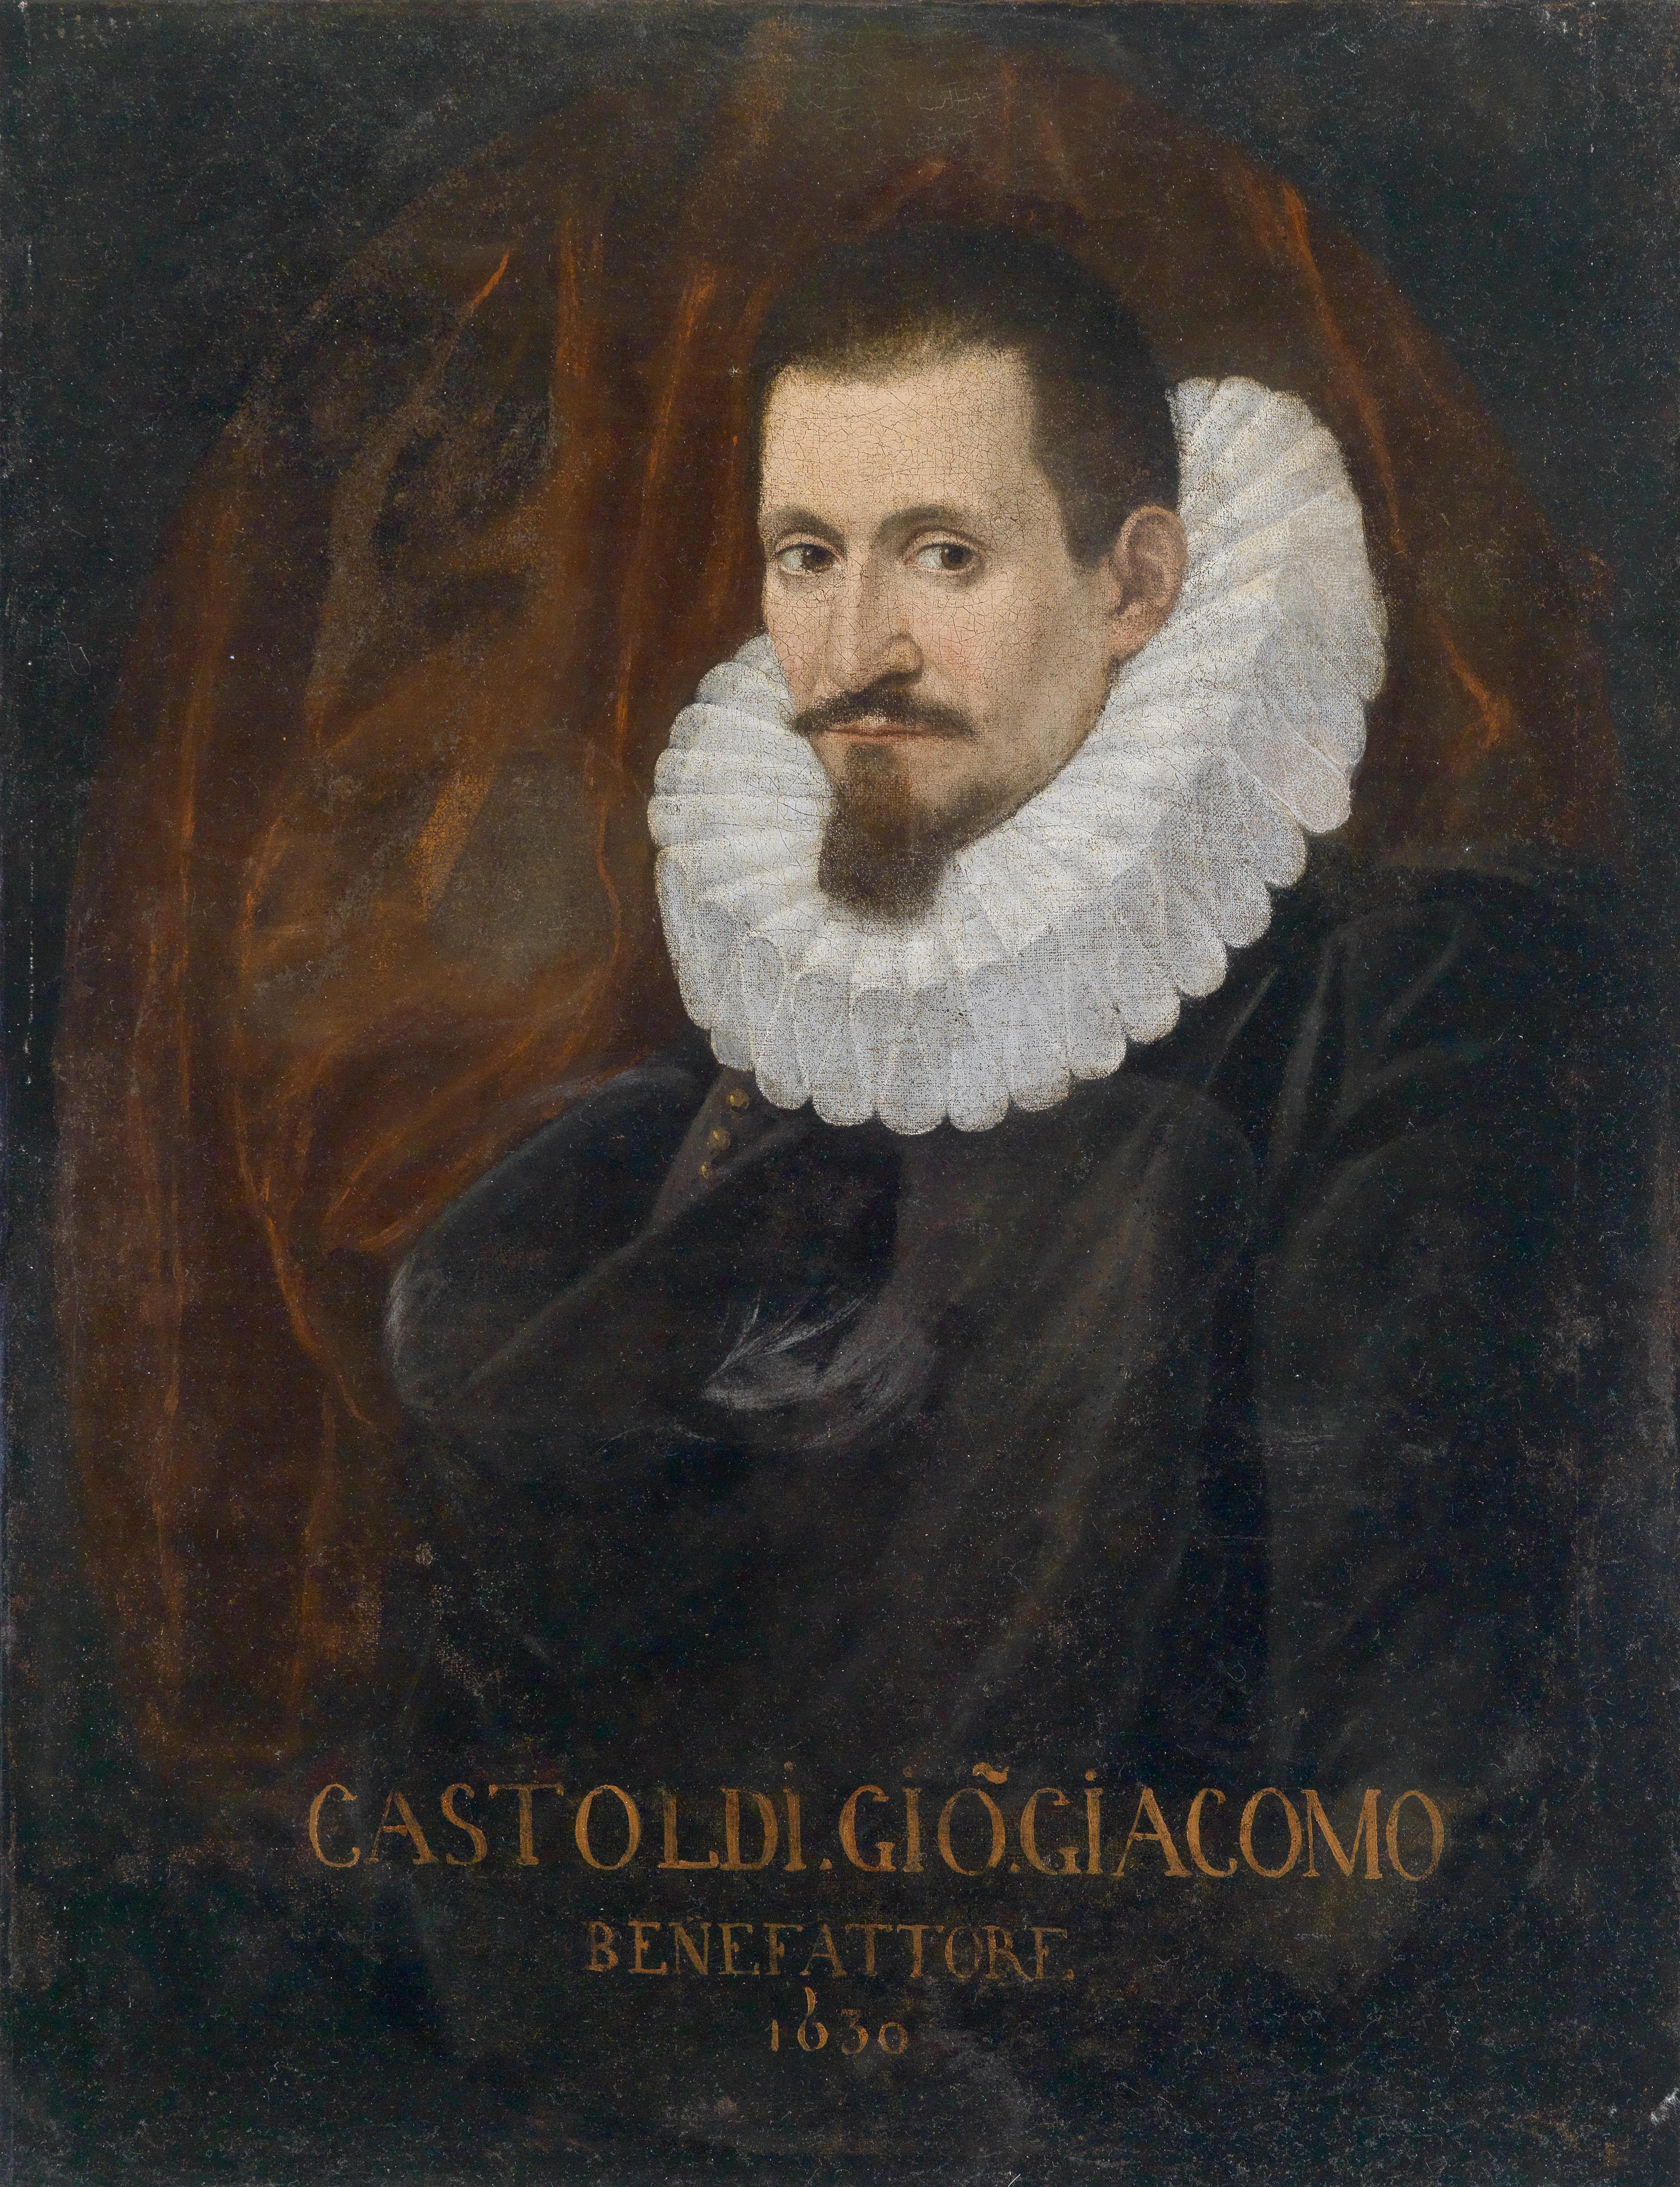 Giovanni Giacomo Gastoldi (Northern Italian School of the early 17th century)